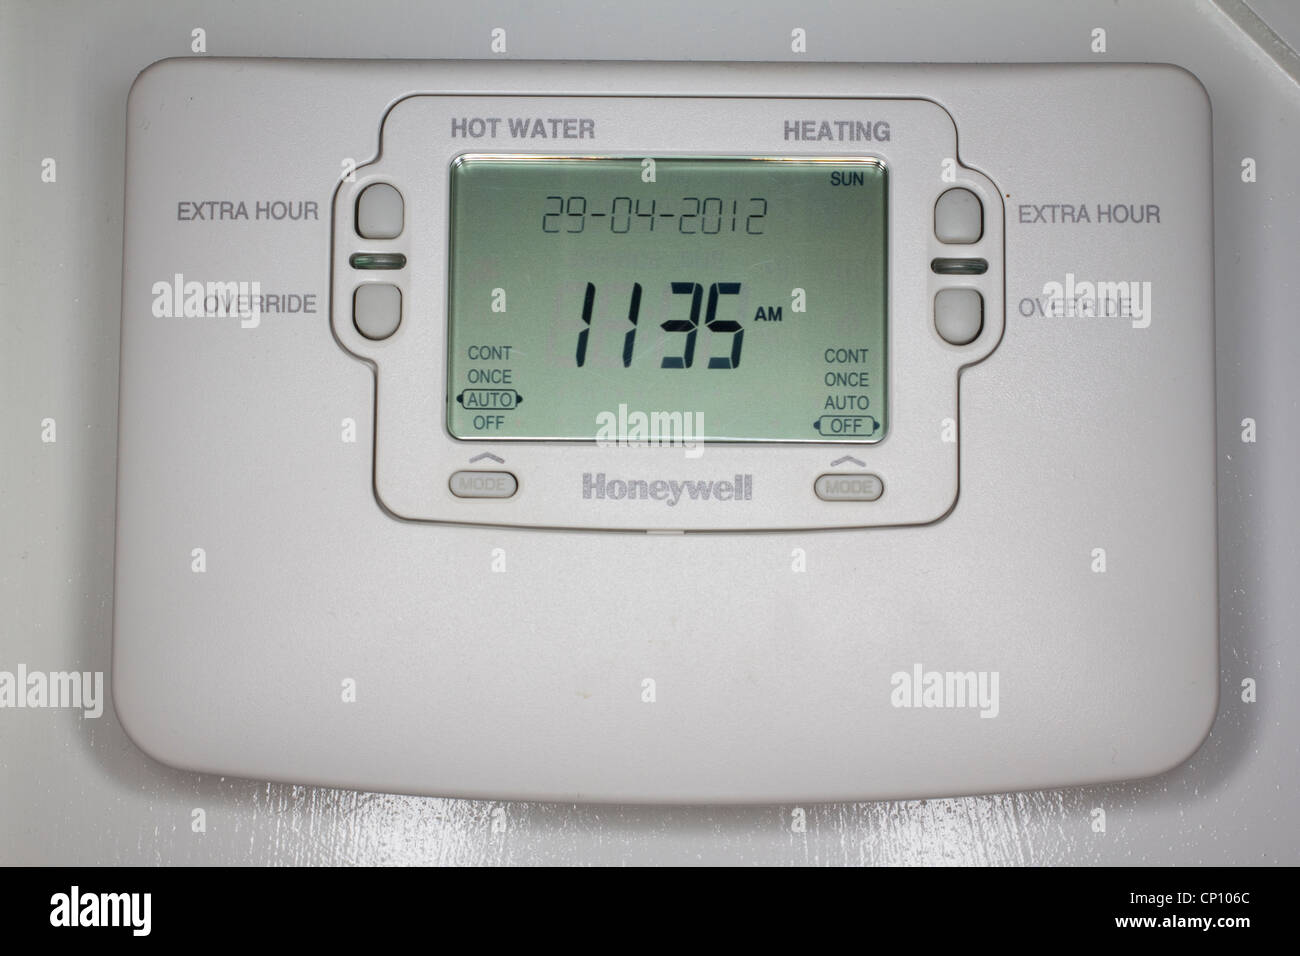 household honeywell central heating programmer timer on wall in residential property - Stock Image